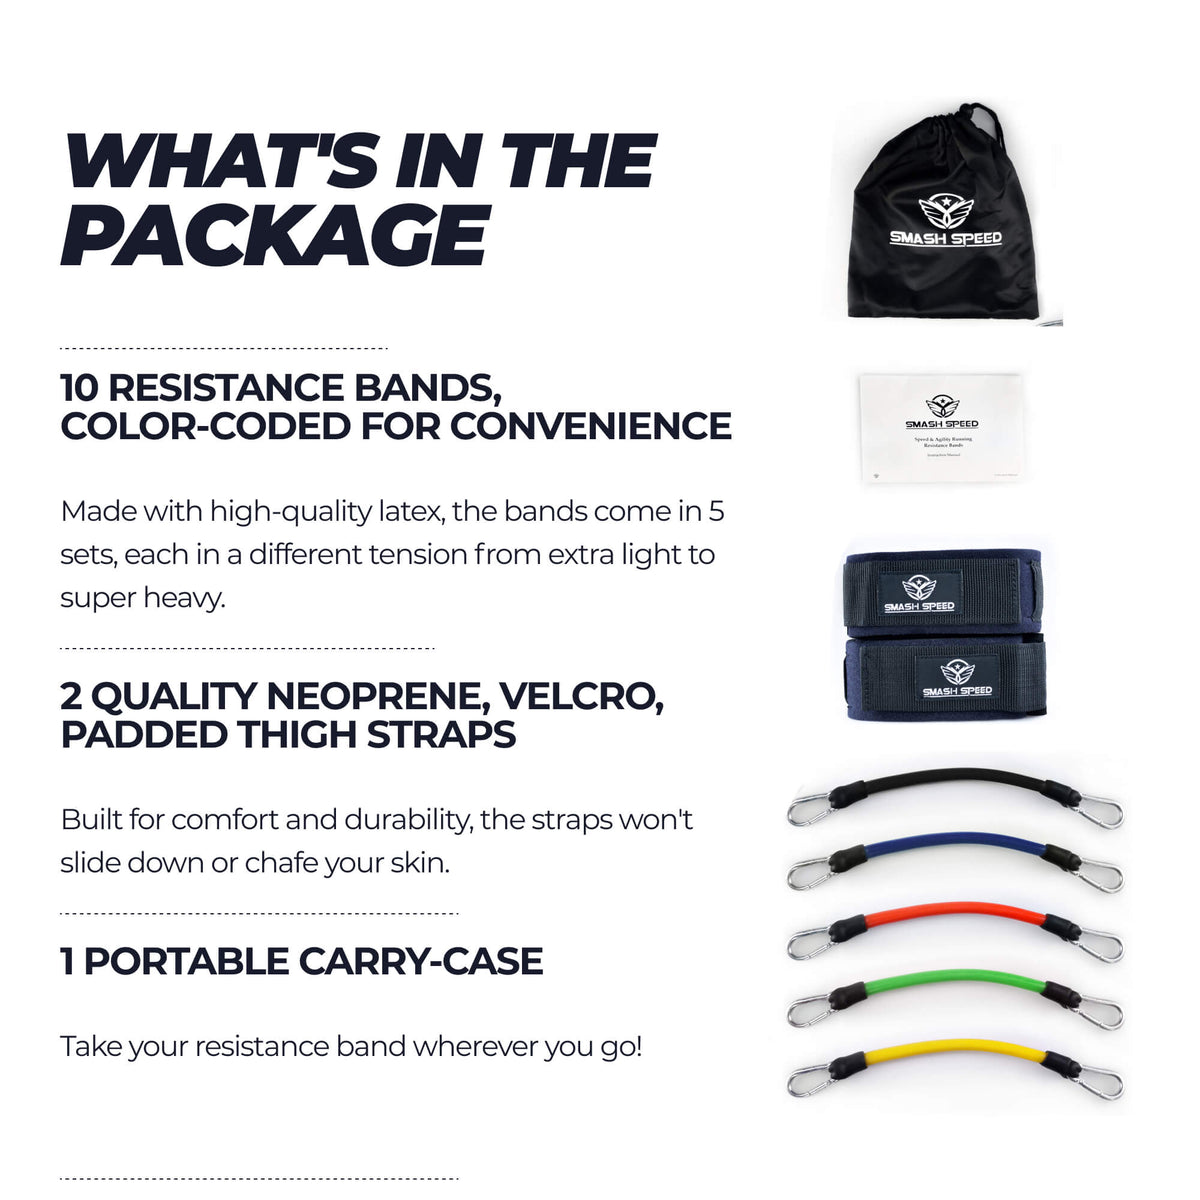 leg resistance bands what's in the package